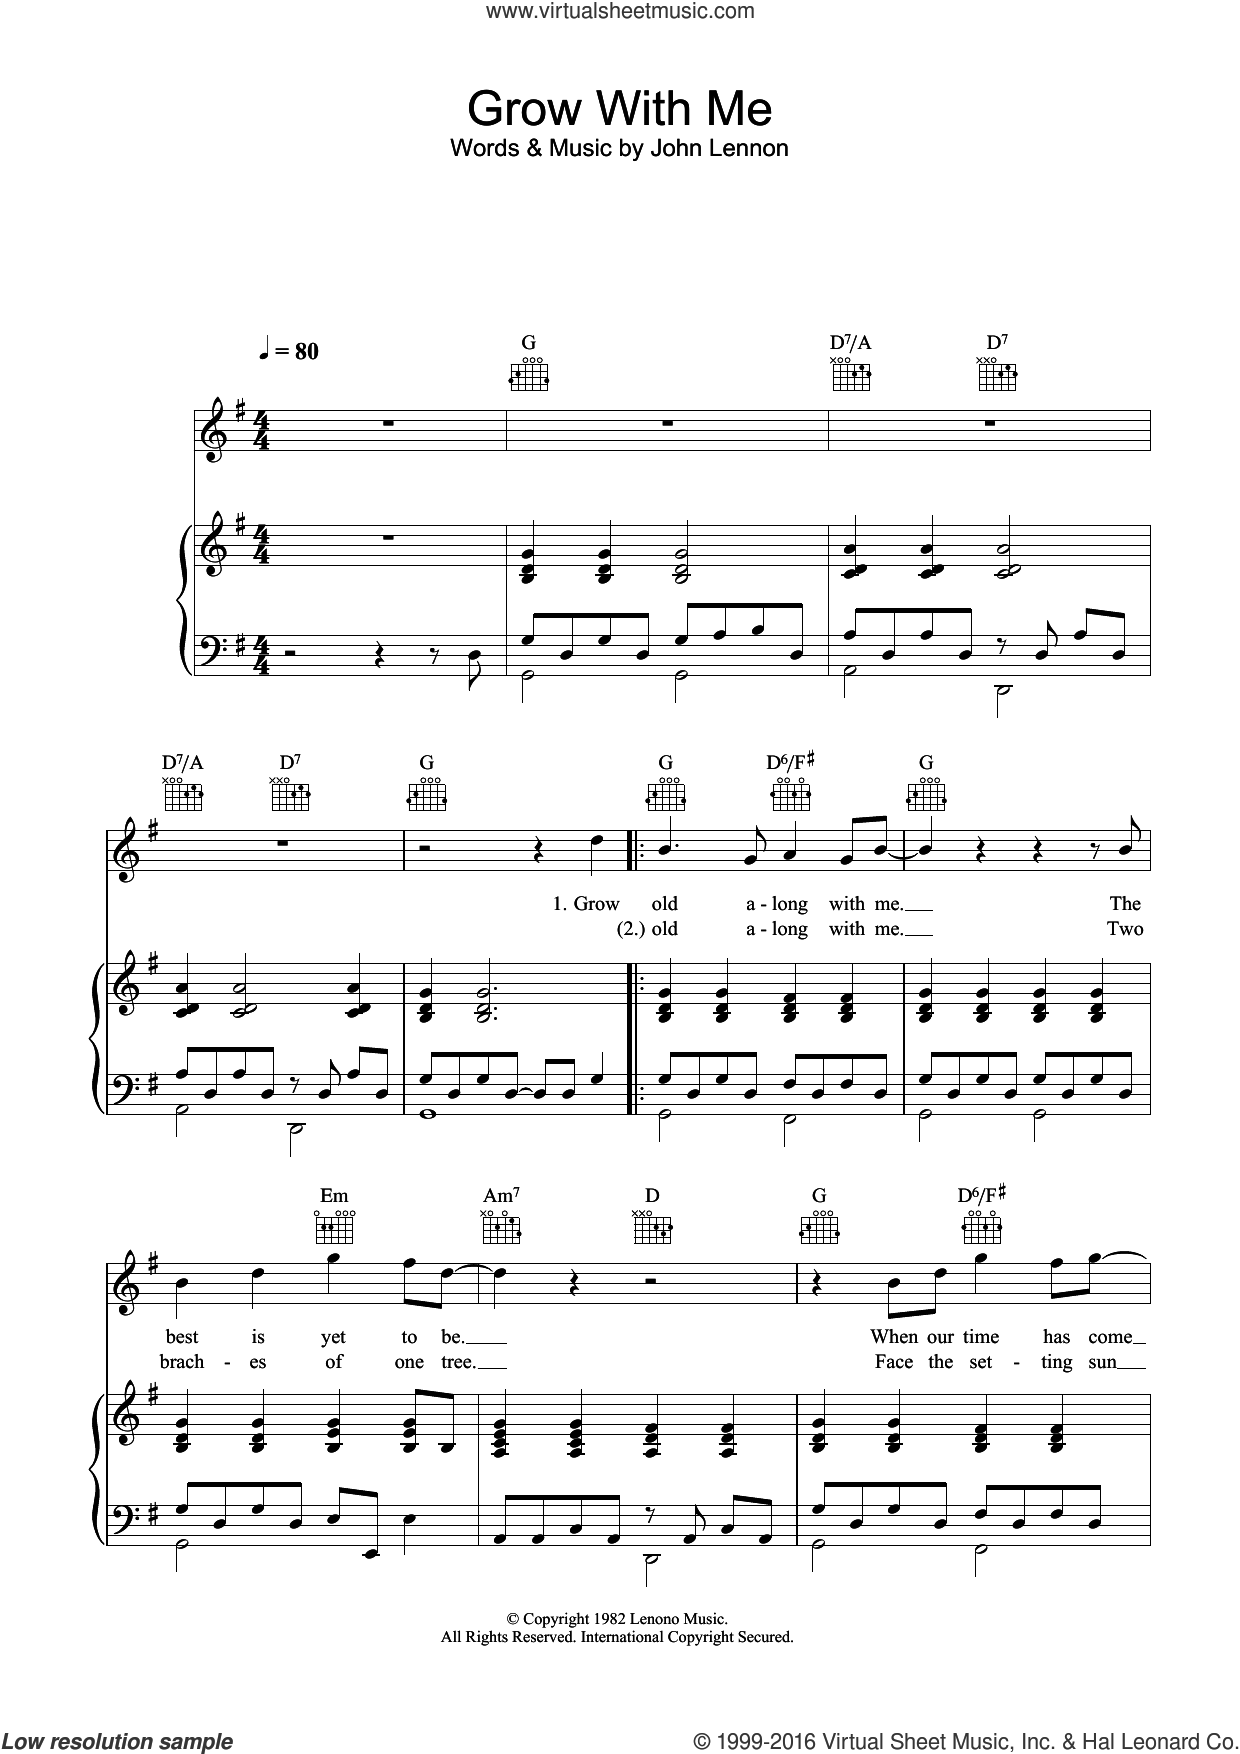 Grow Old With Me sheet music for voice, piano or guitar by John Lennon, intermediate skill level